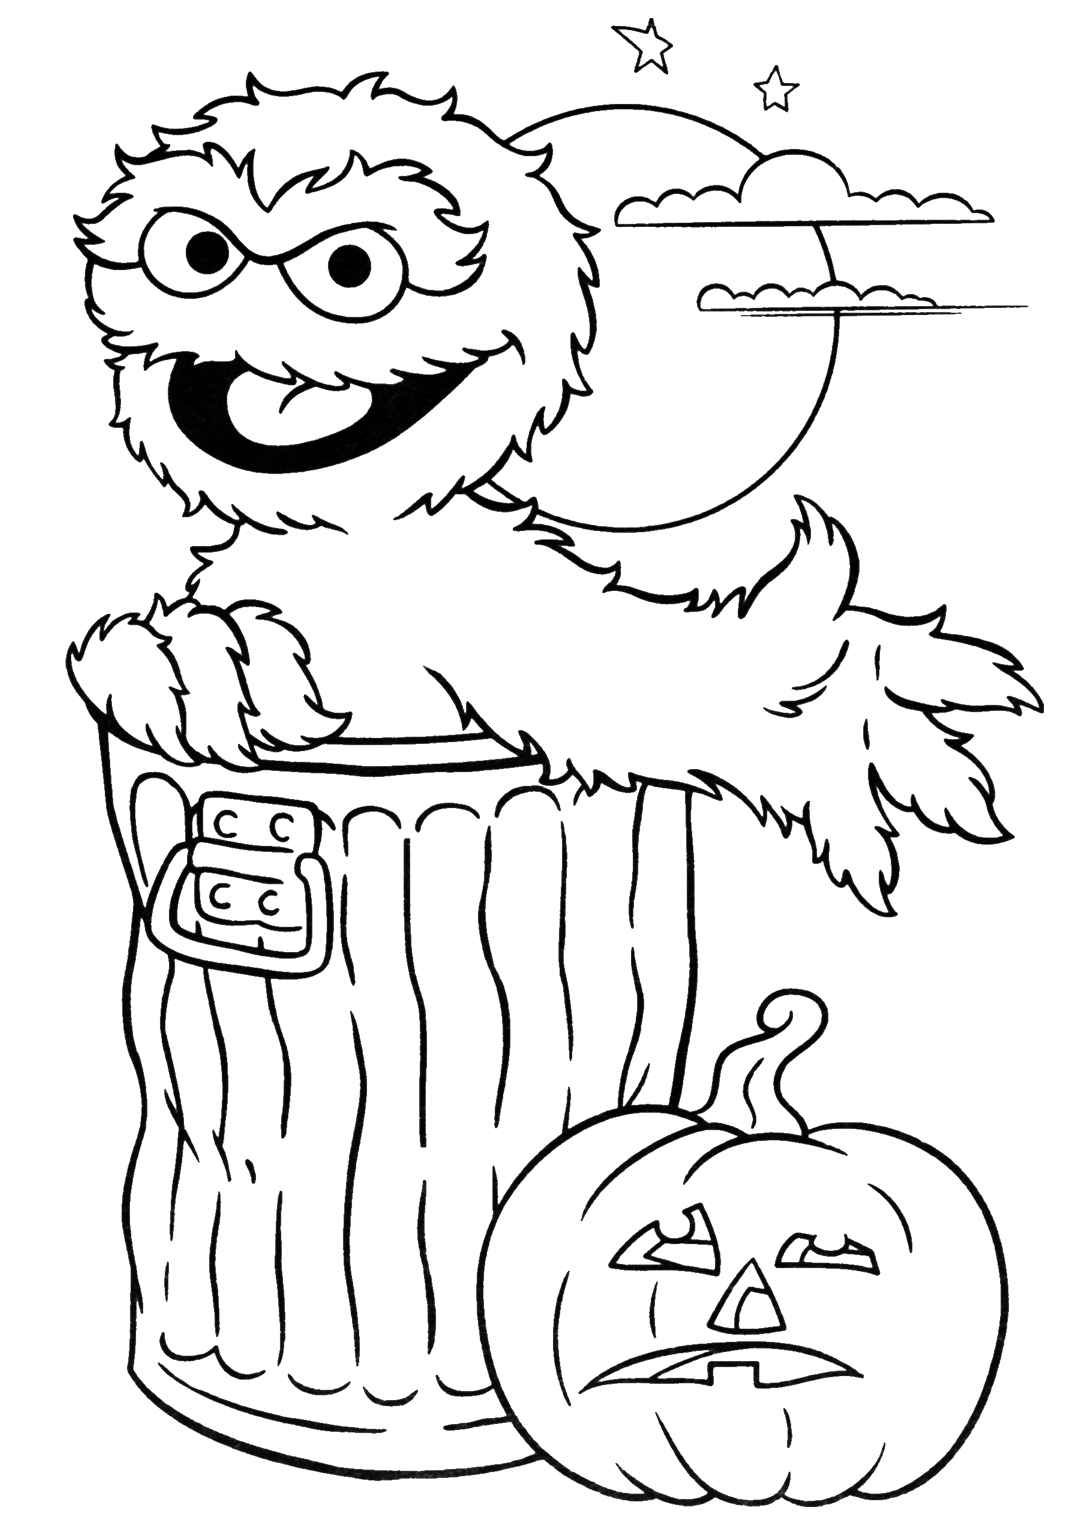 Halloween Printable Coloring Pages - Minnesota Miranda